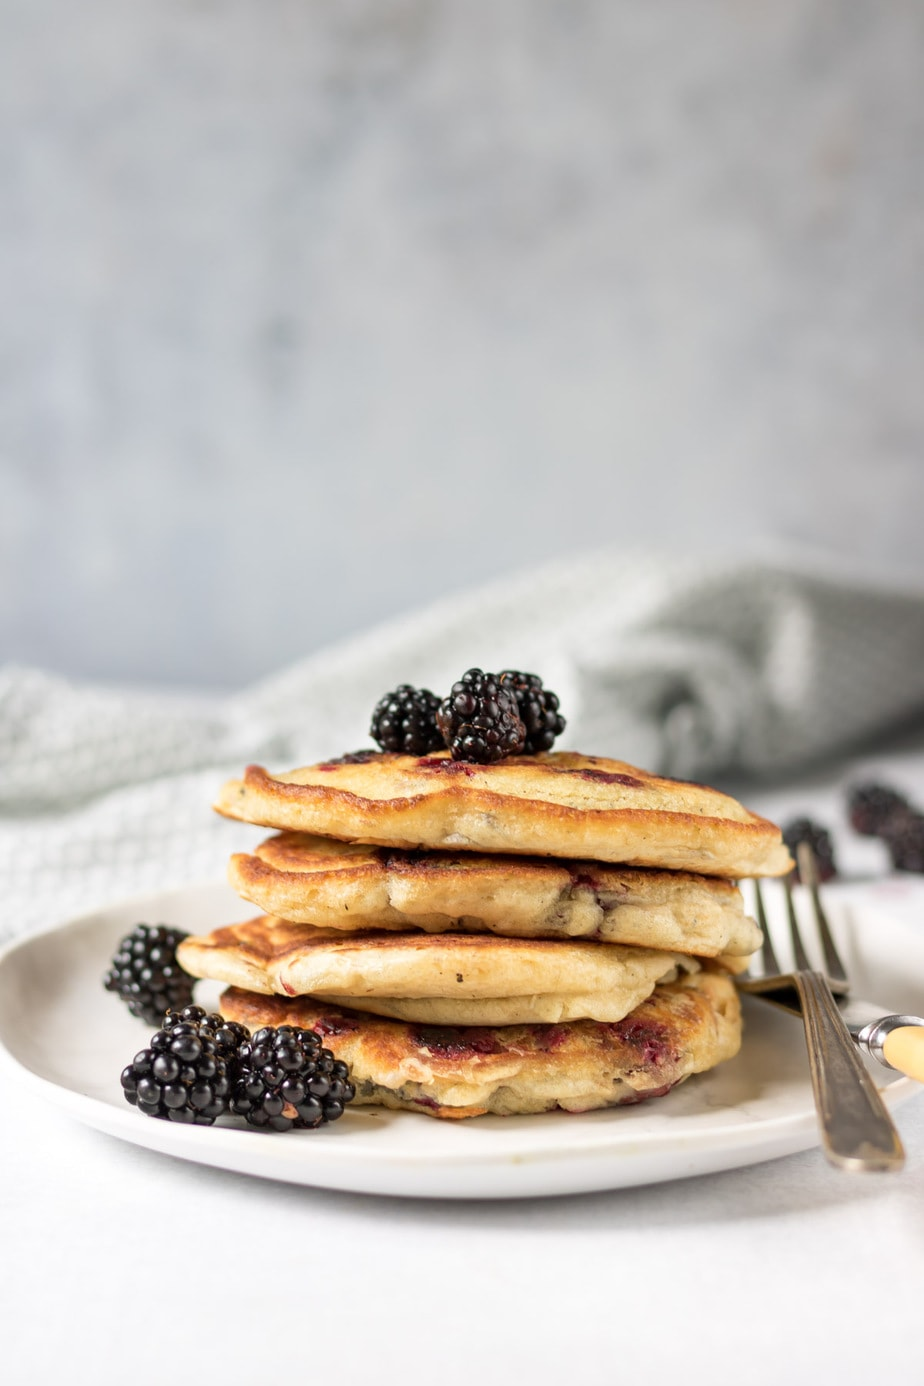 Stack of pancakes with blackberries on top.